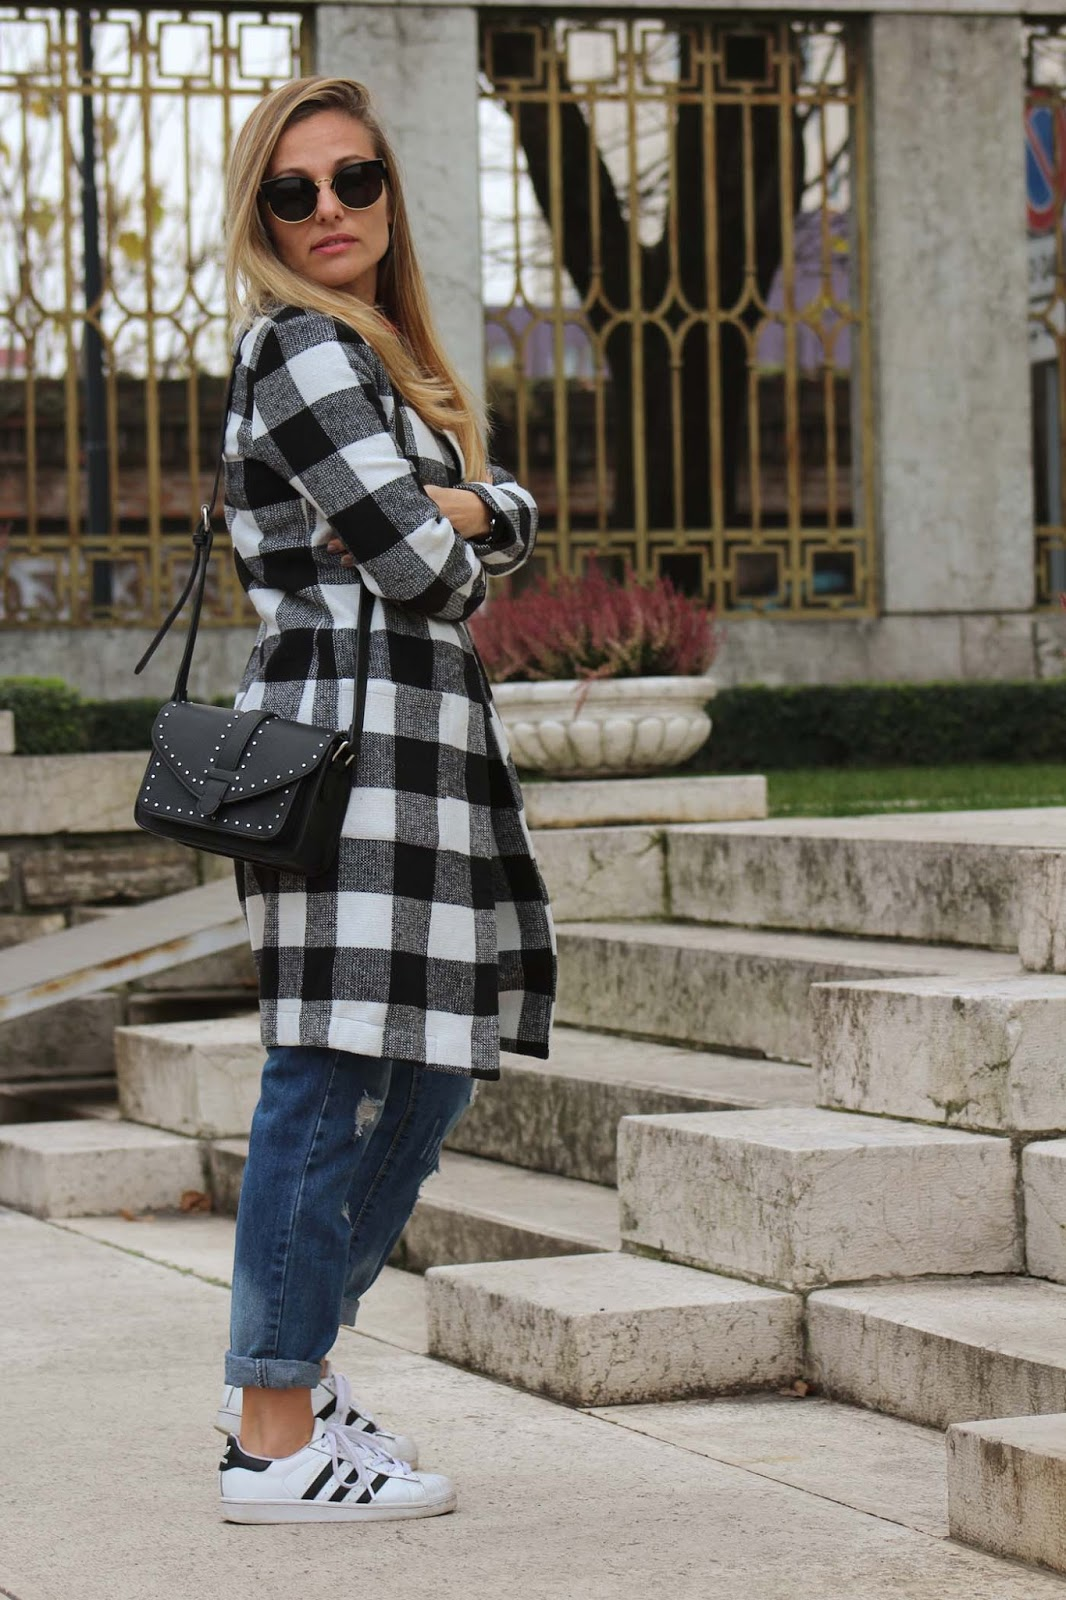 Eniwhere Fashion - Checked Coat Shein